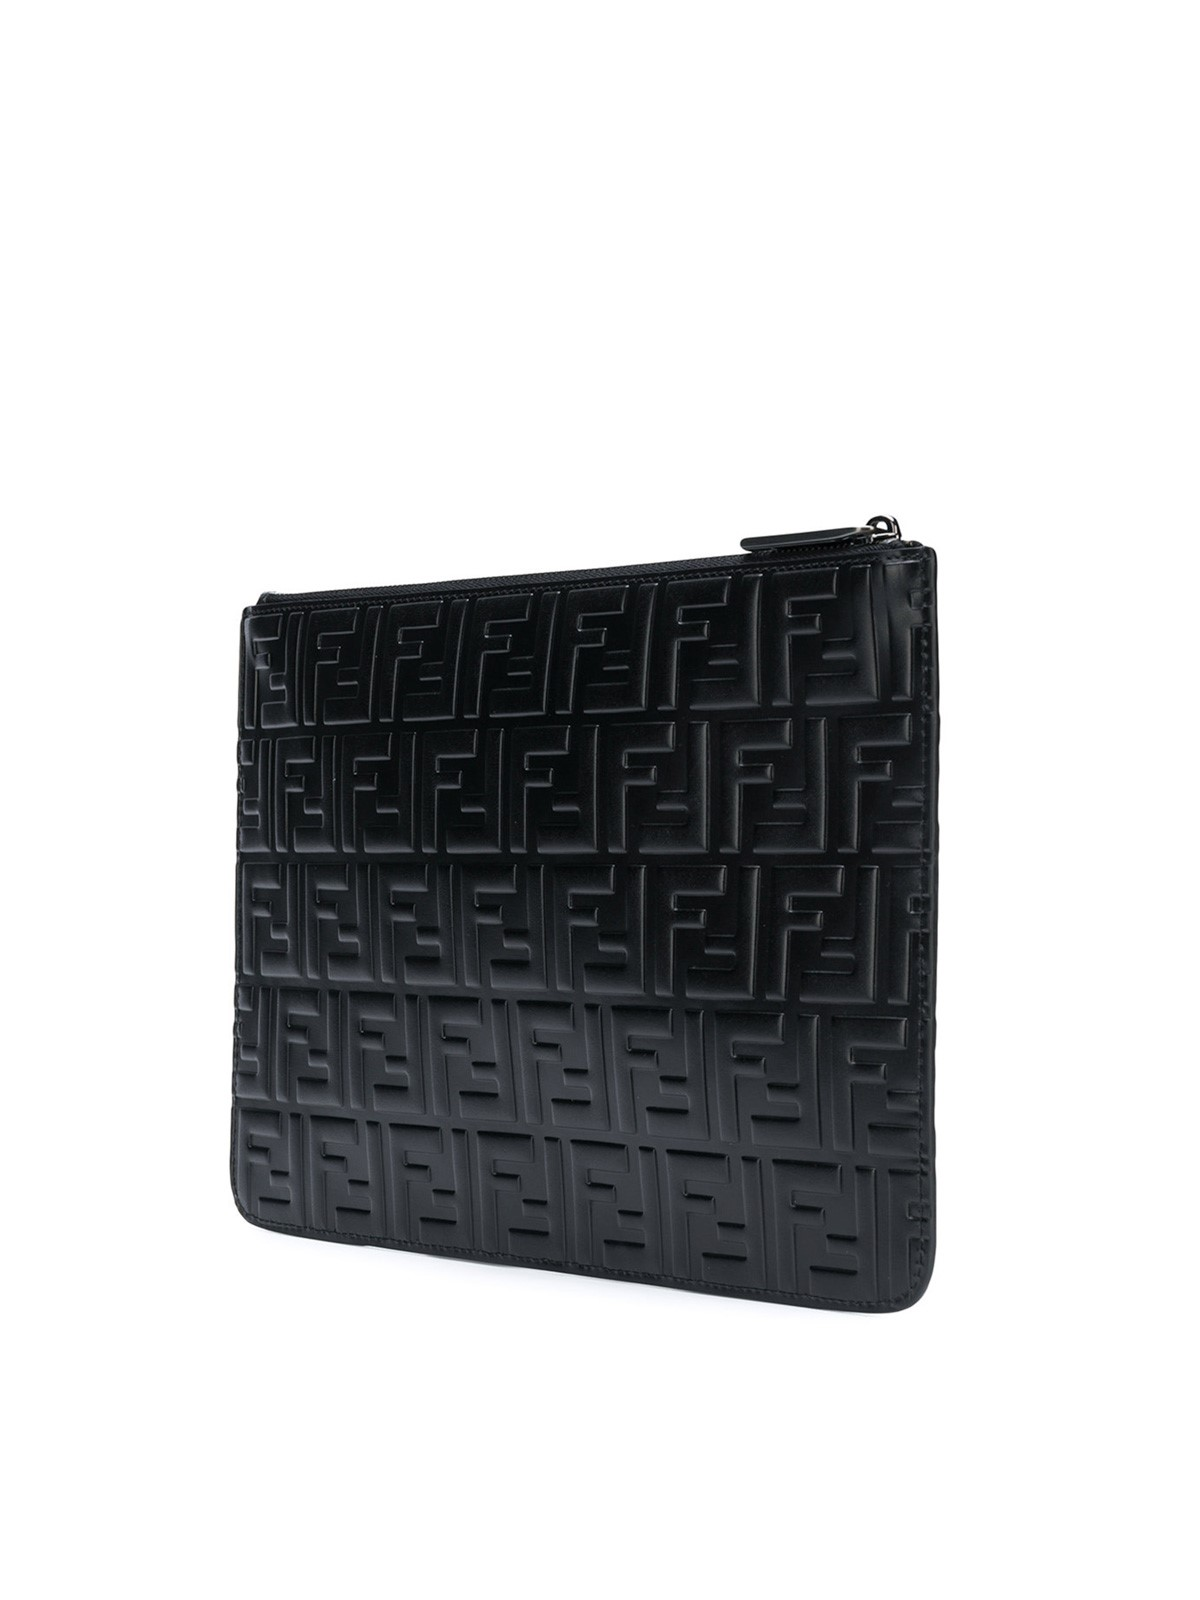 9a7f6272acd1 fendi LOGO CLUTCH BAG available on montiboutique.com - 22932